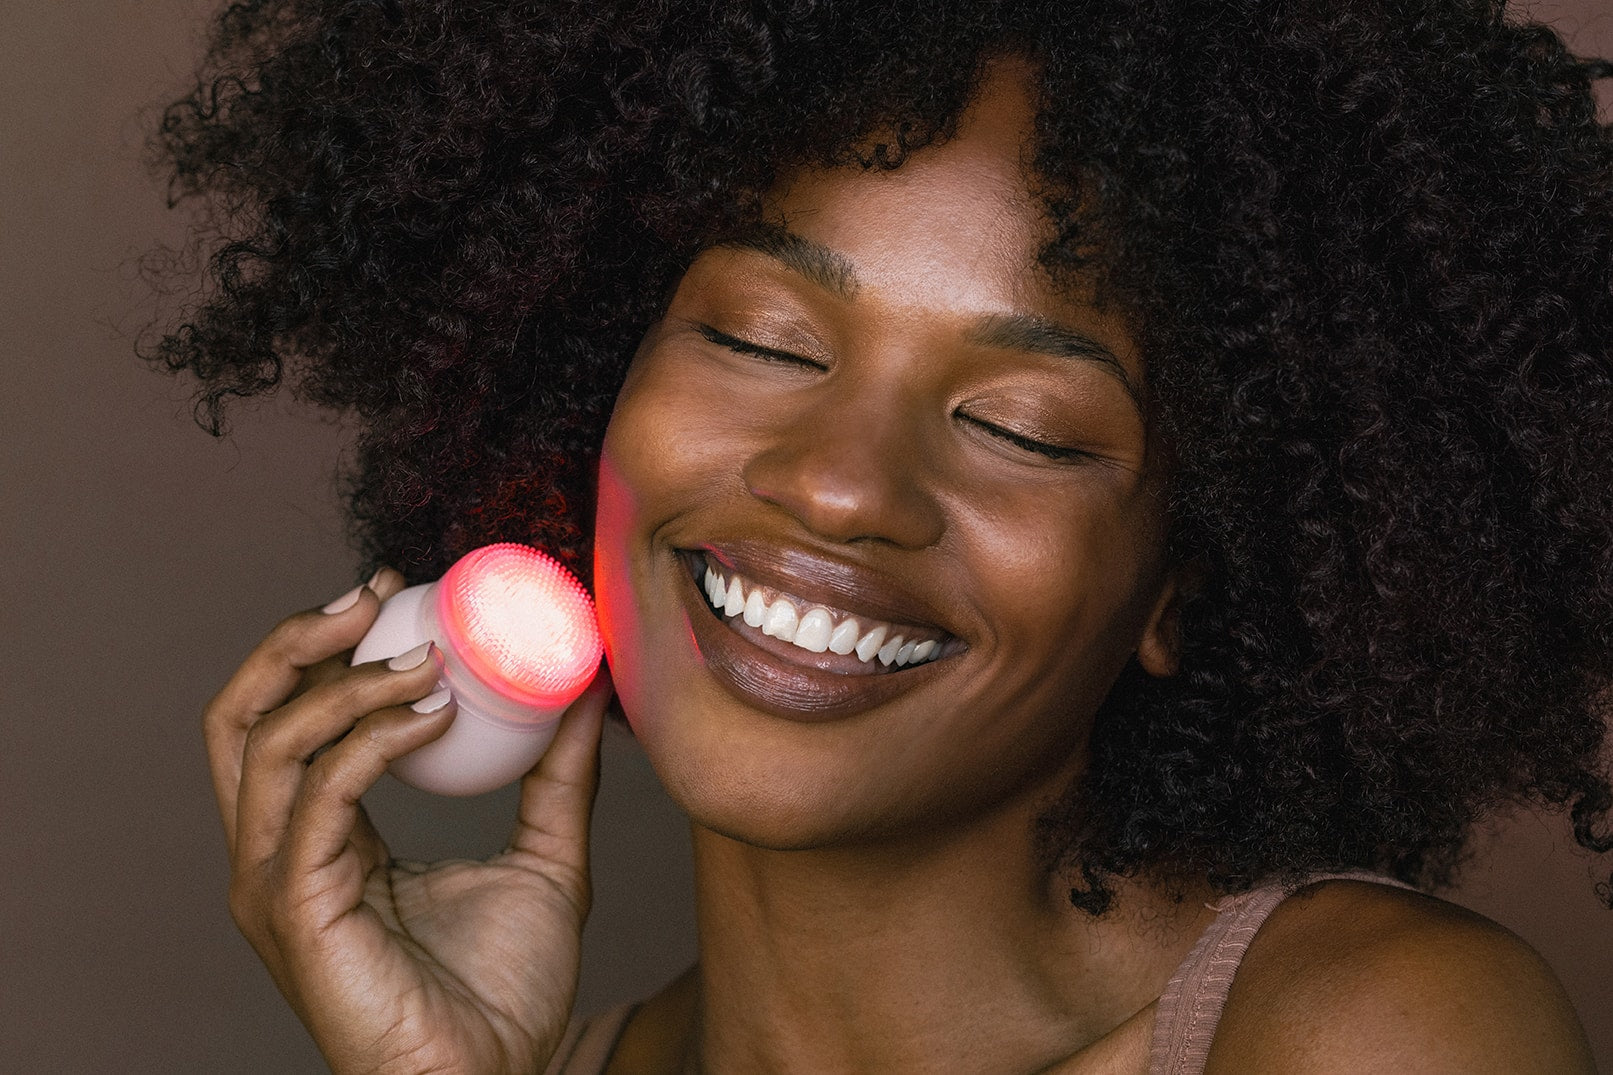 LED light therapy for your skin, anti aging treatment, treat fine lines and wrinkles with Red LED light